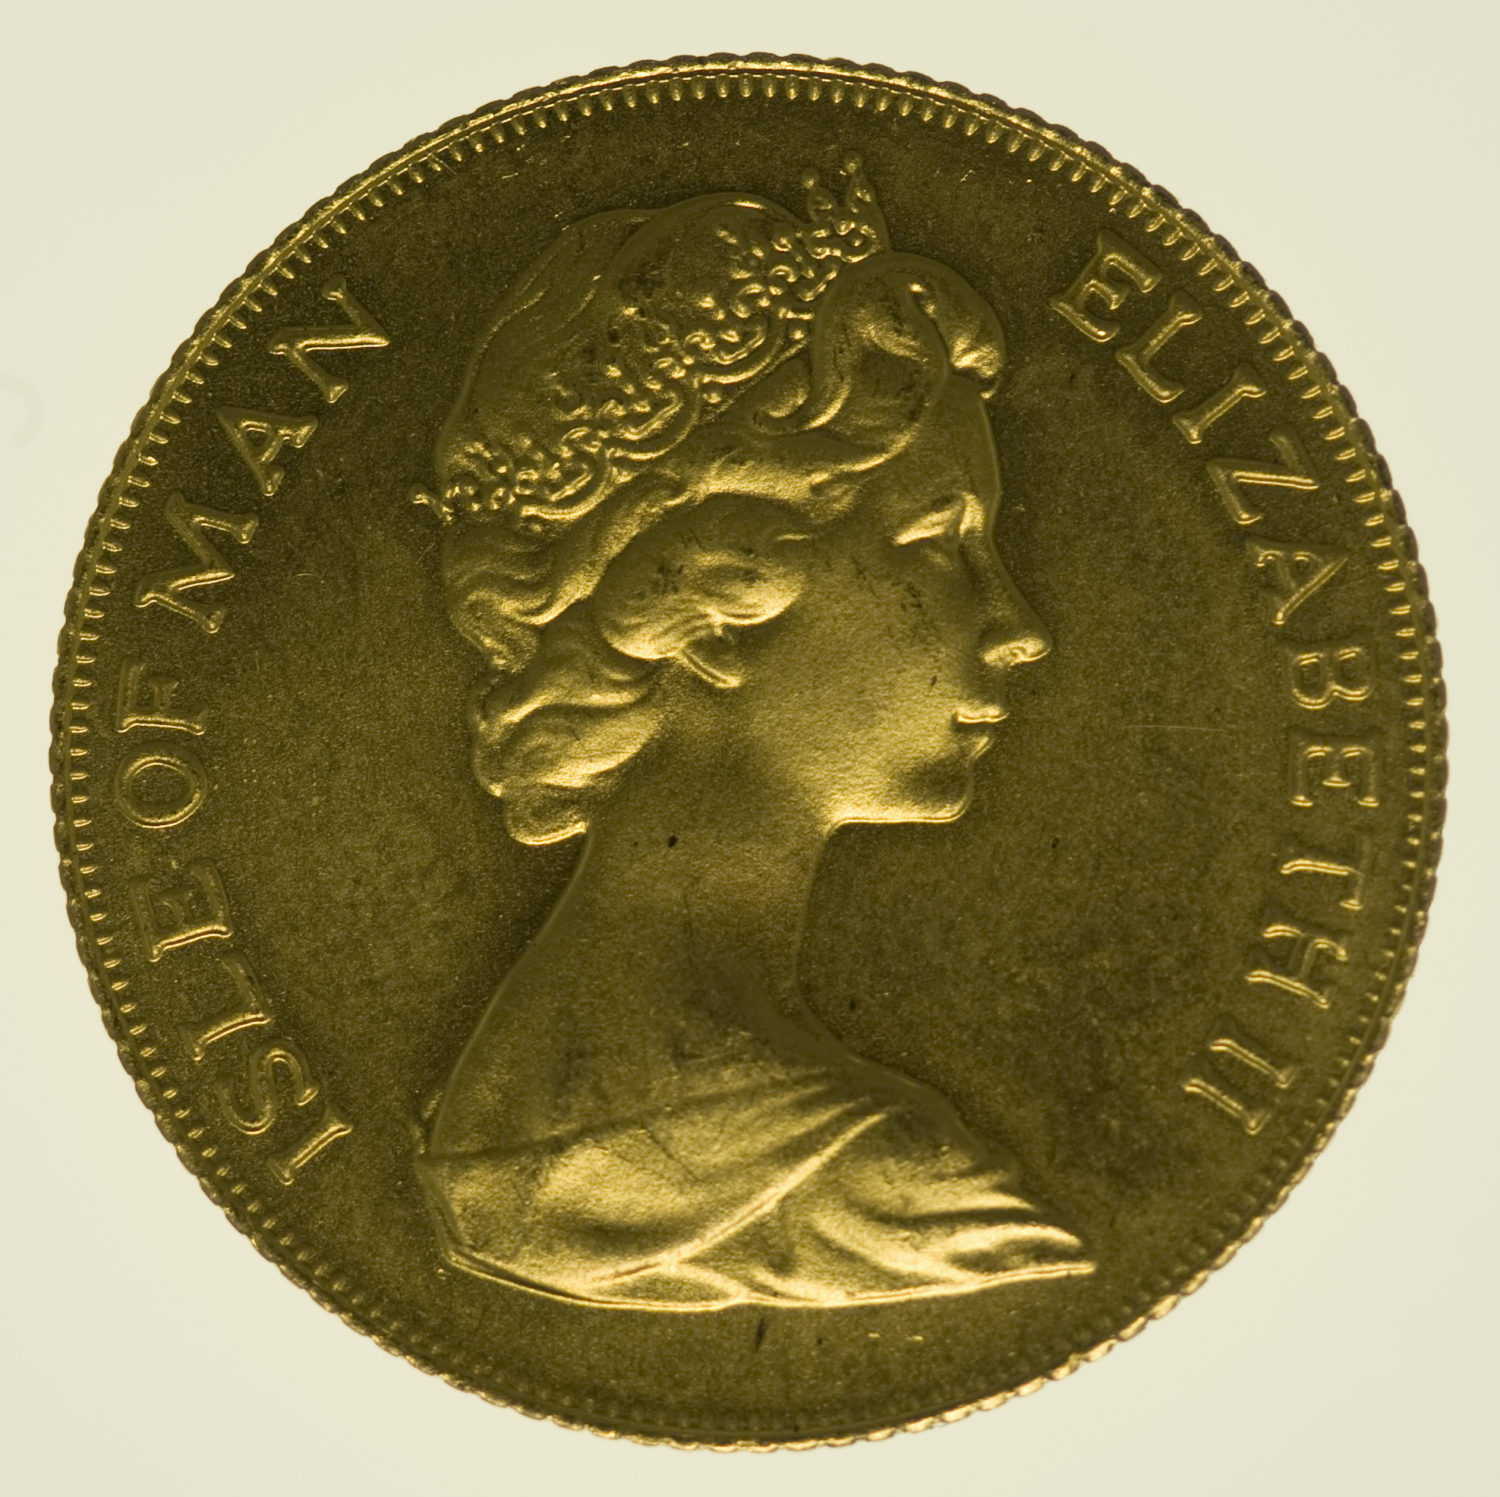 isle-of-man - Isle of Man Elisabeth II. Sovereign 1977